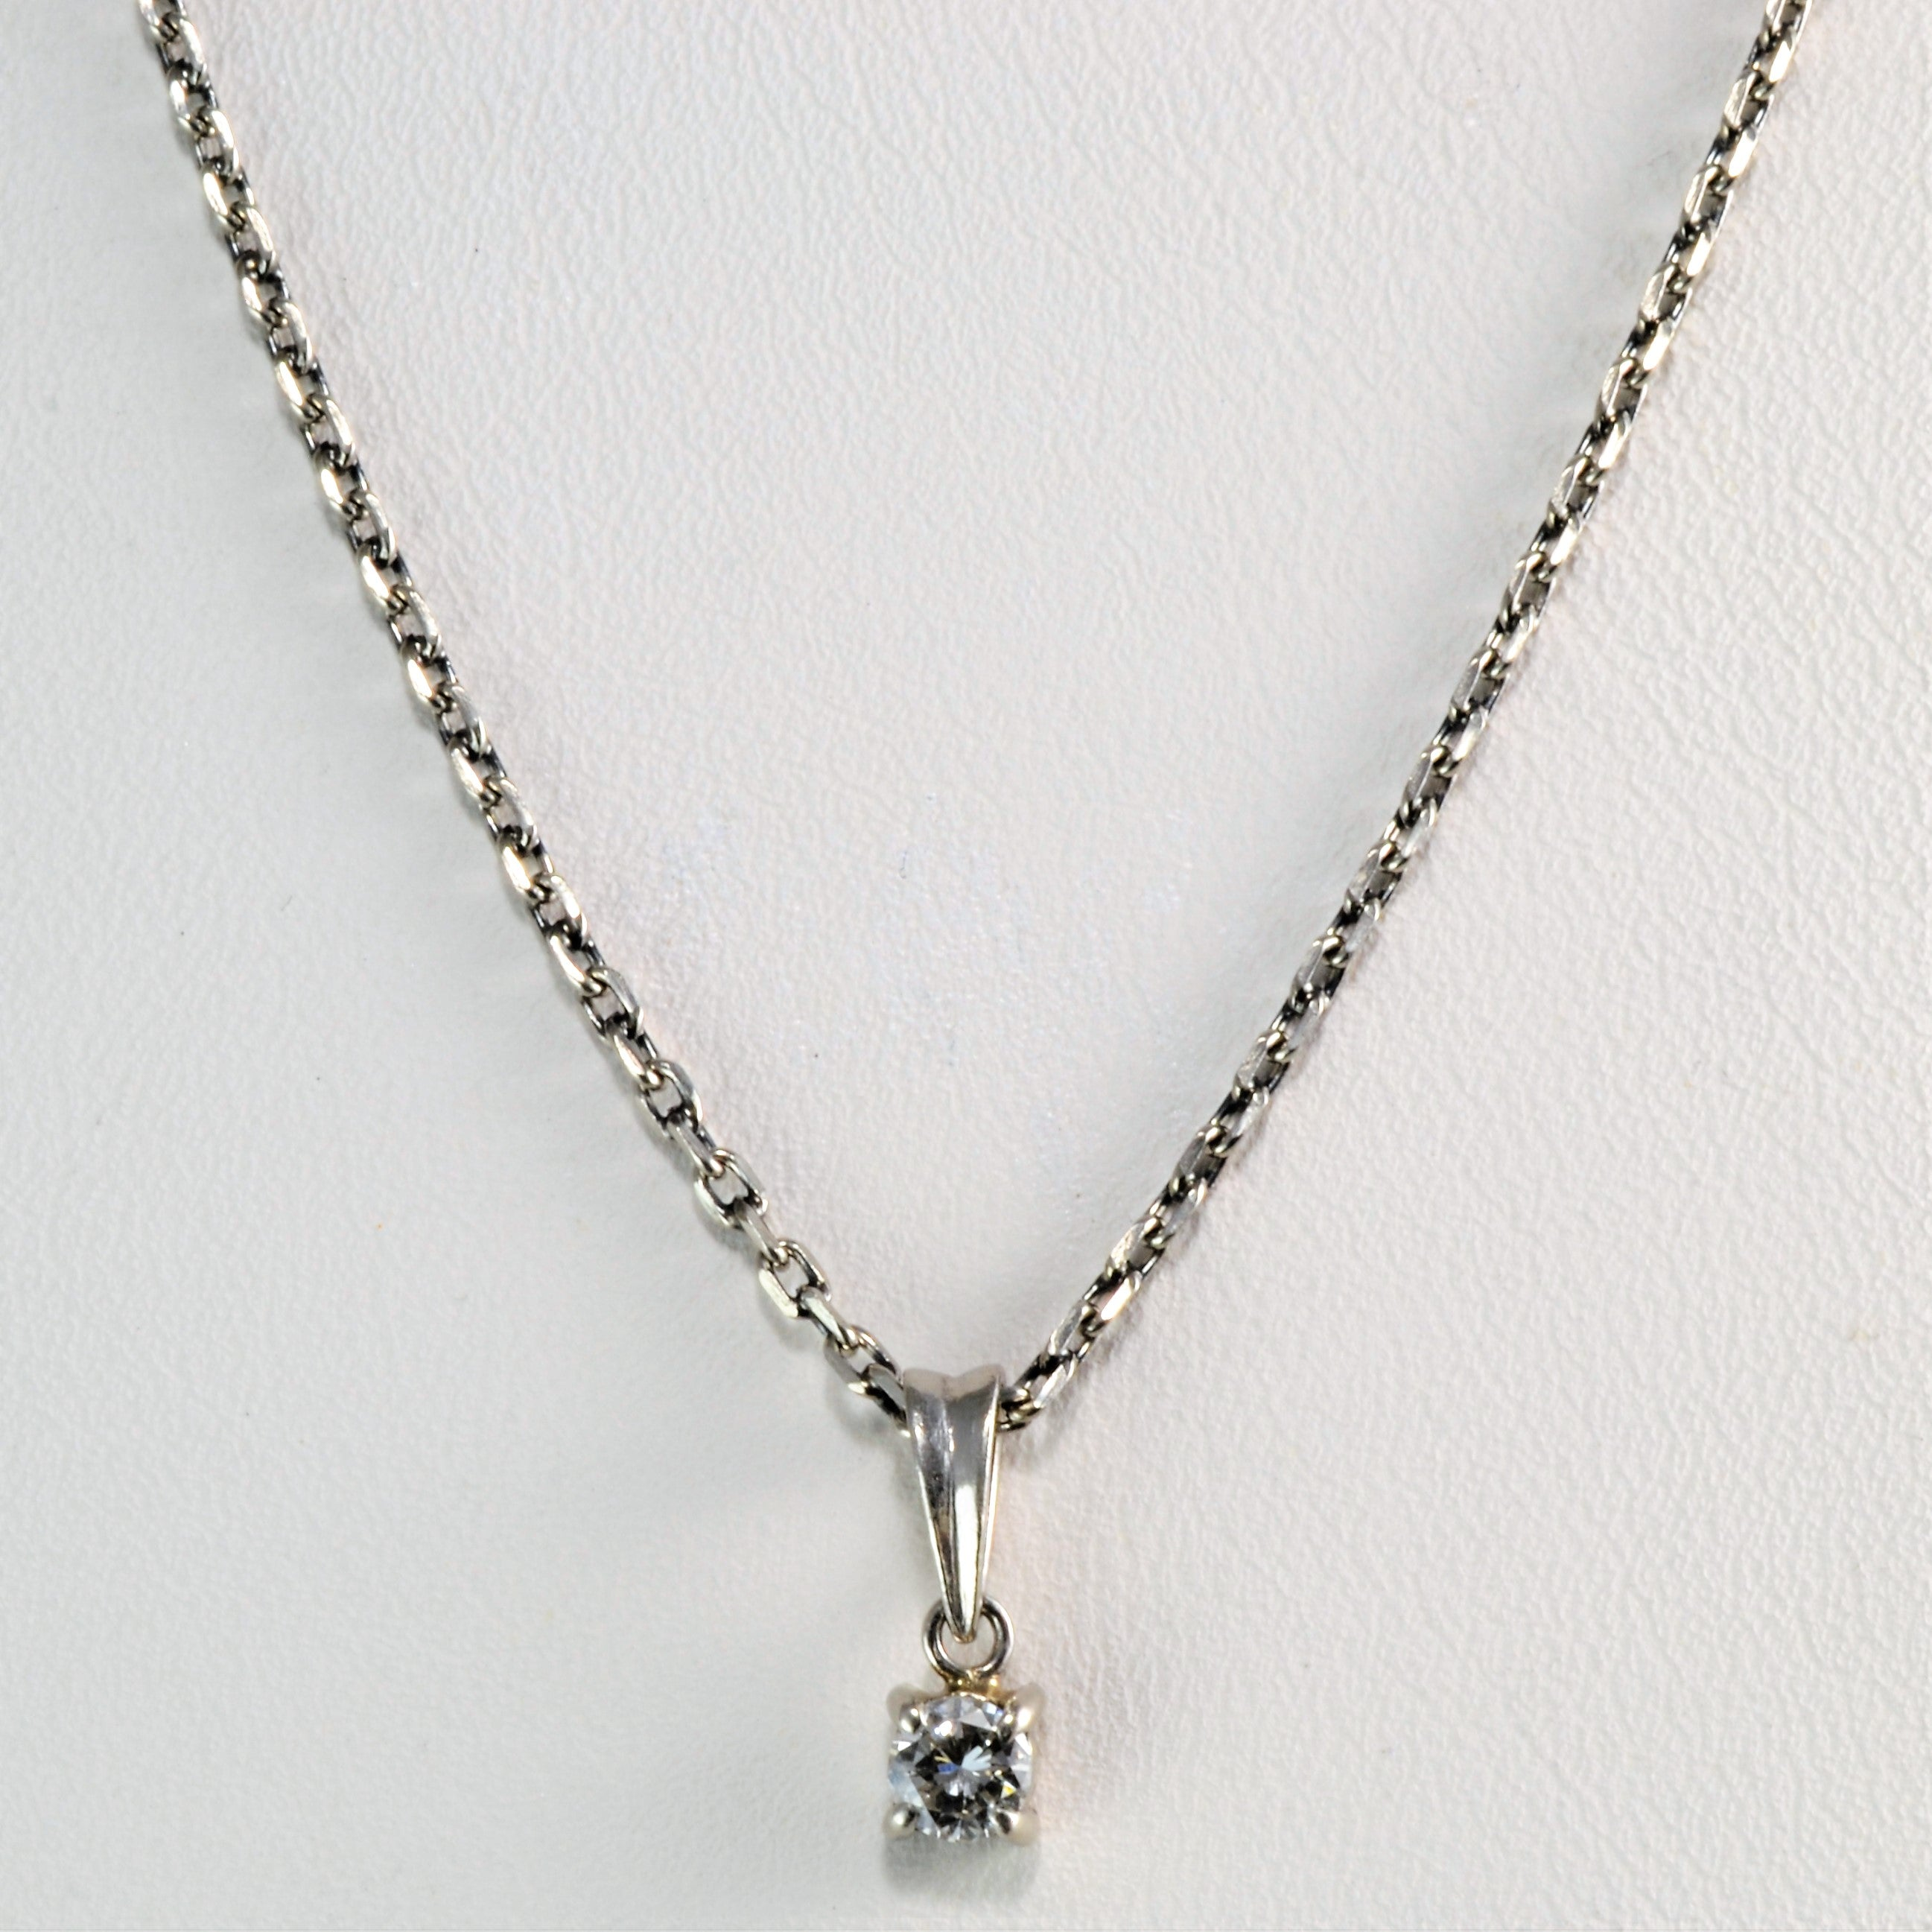 pendant pine white the a and sapphires with are mistakes often gold called to restoration ruby of pearls diamonds repair set jewelery necklace damage we upon ltd for antique platinum past wa an jewelers crane street by made seattle done